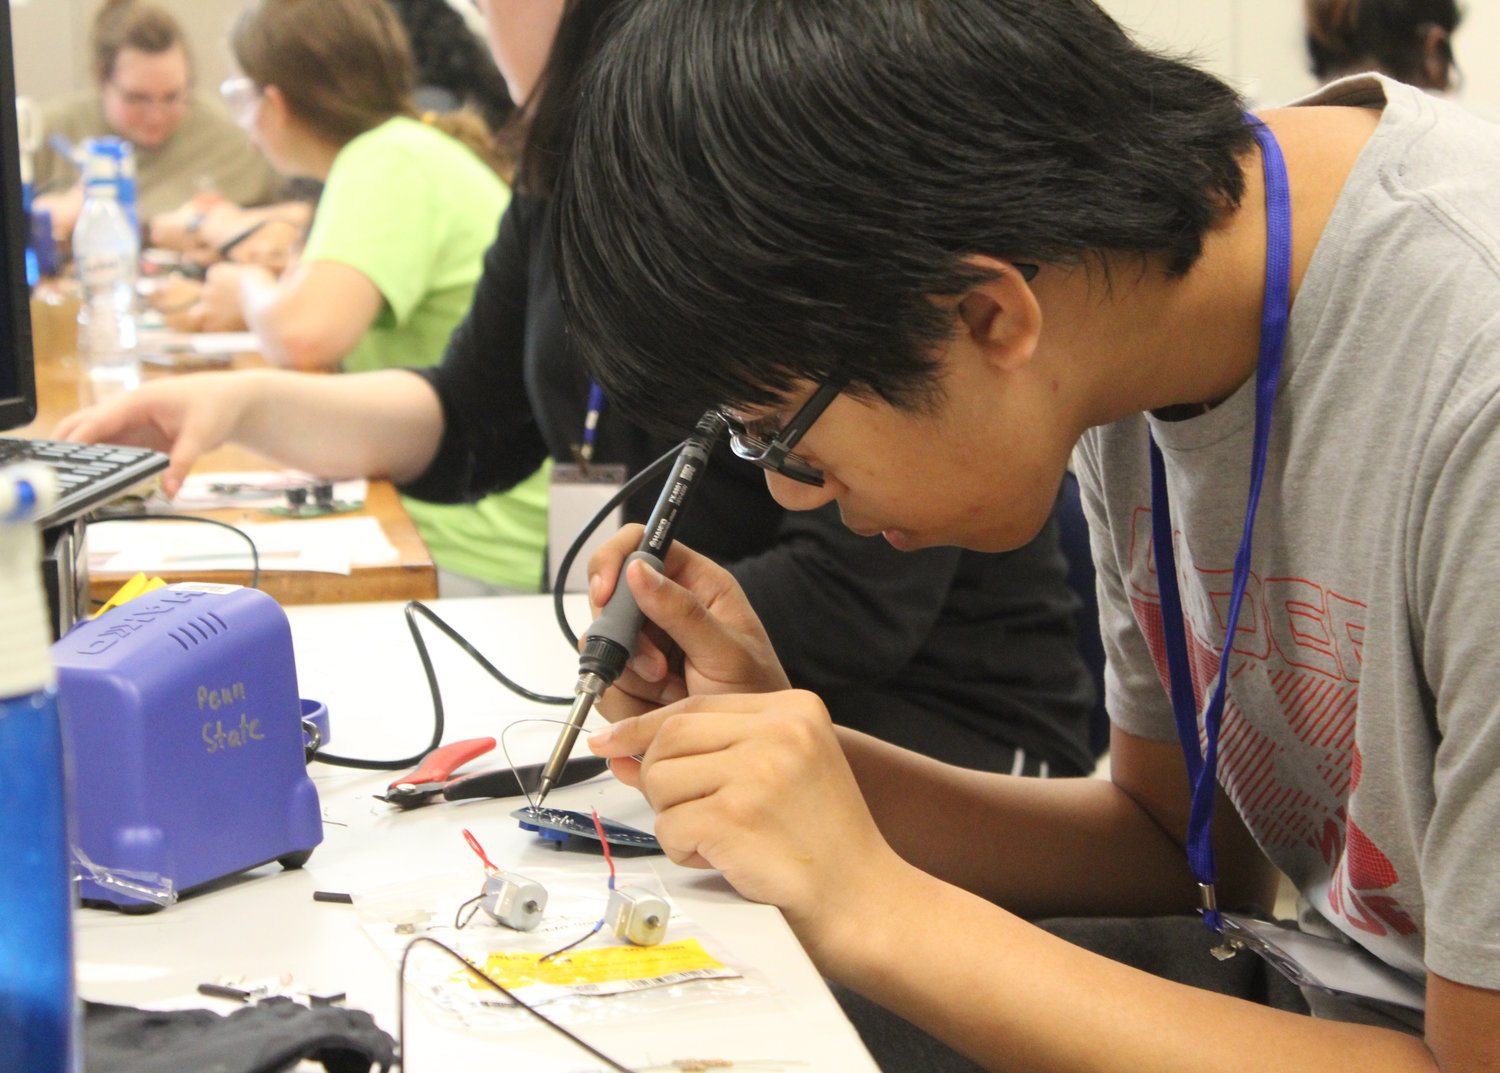 Hershey High School student Luke Wang solders during the electrical engineering lab during Penn State Harrisburg's STEM Summer Enrichment Program on June 19.